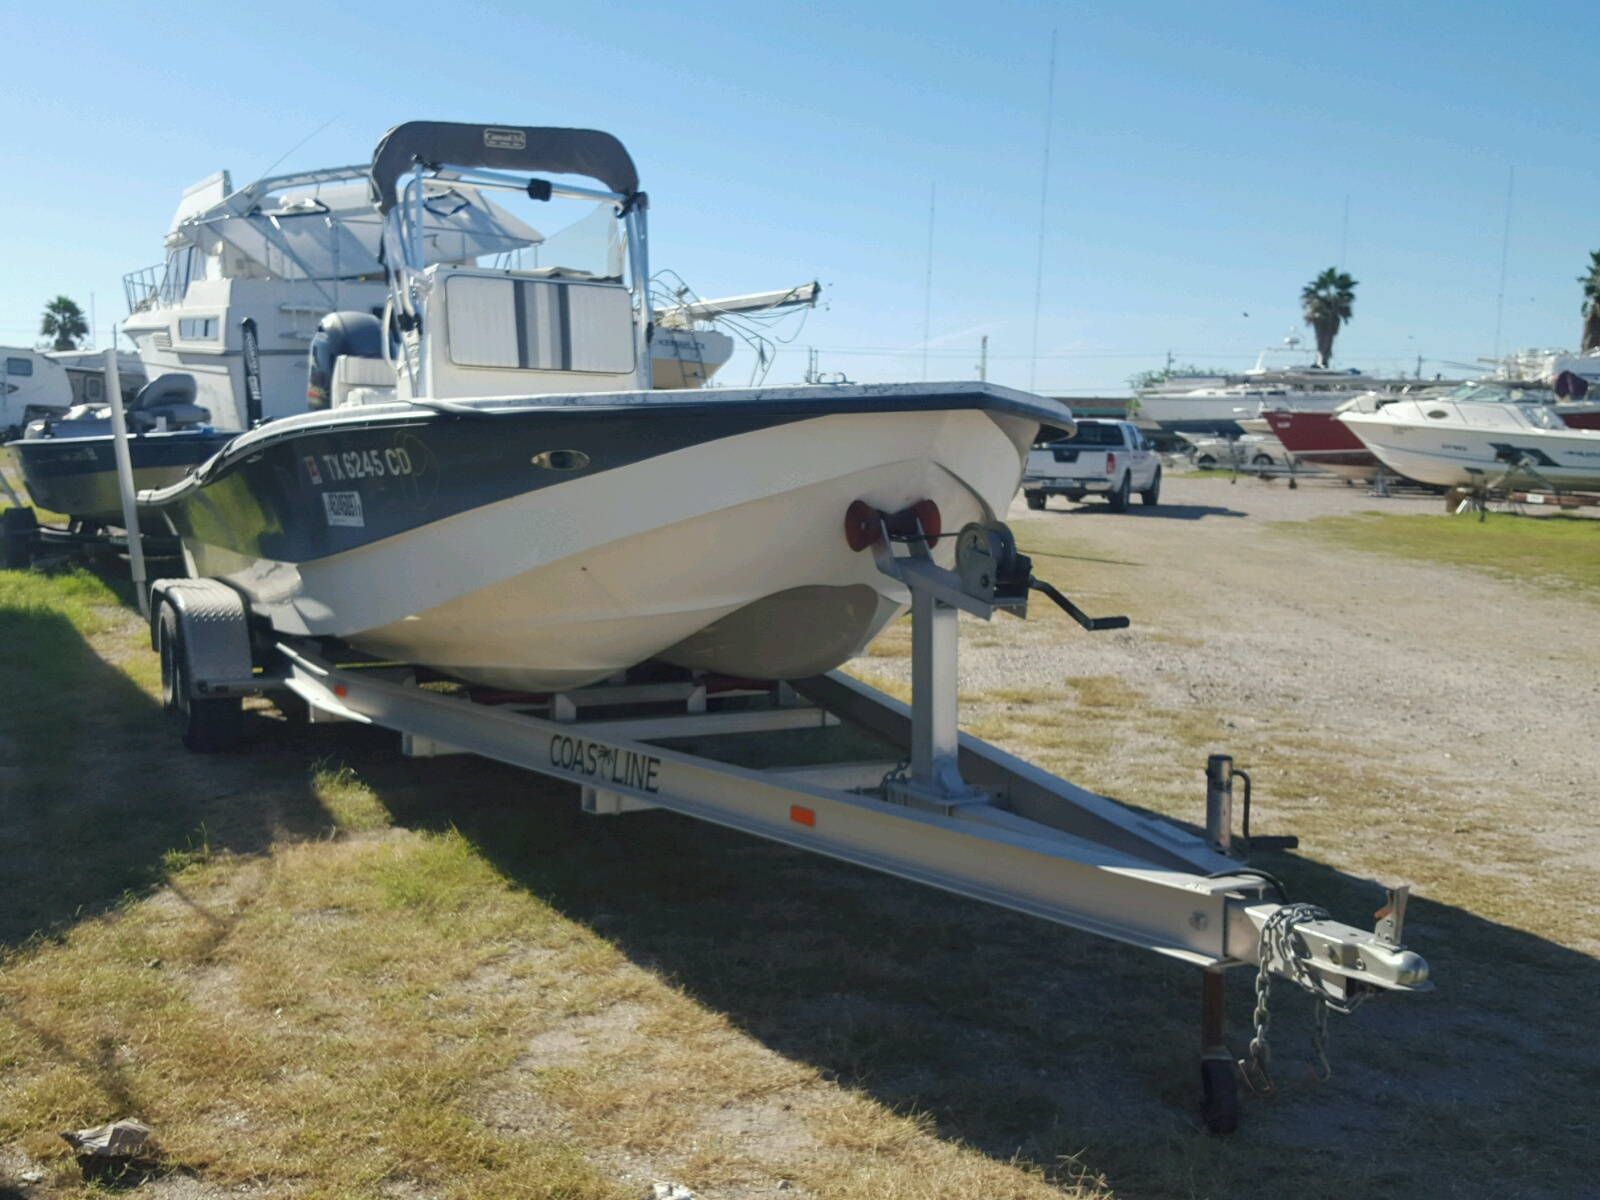 Salvage 2014 Dynasty BOAT for sale